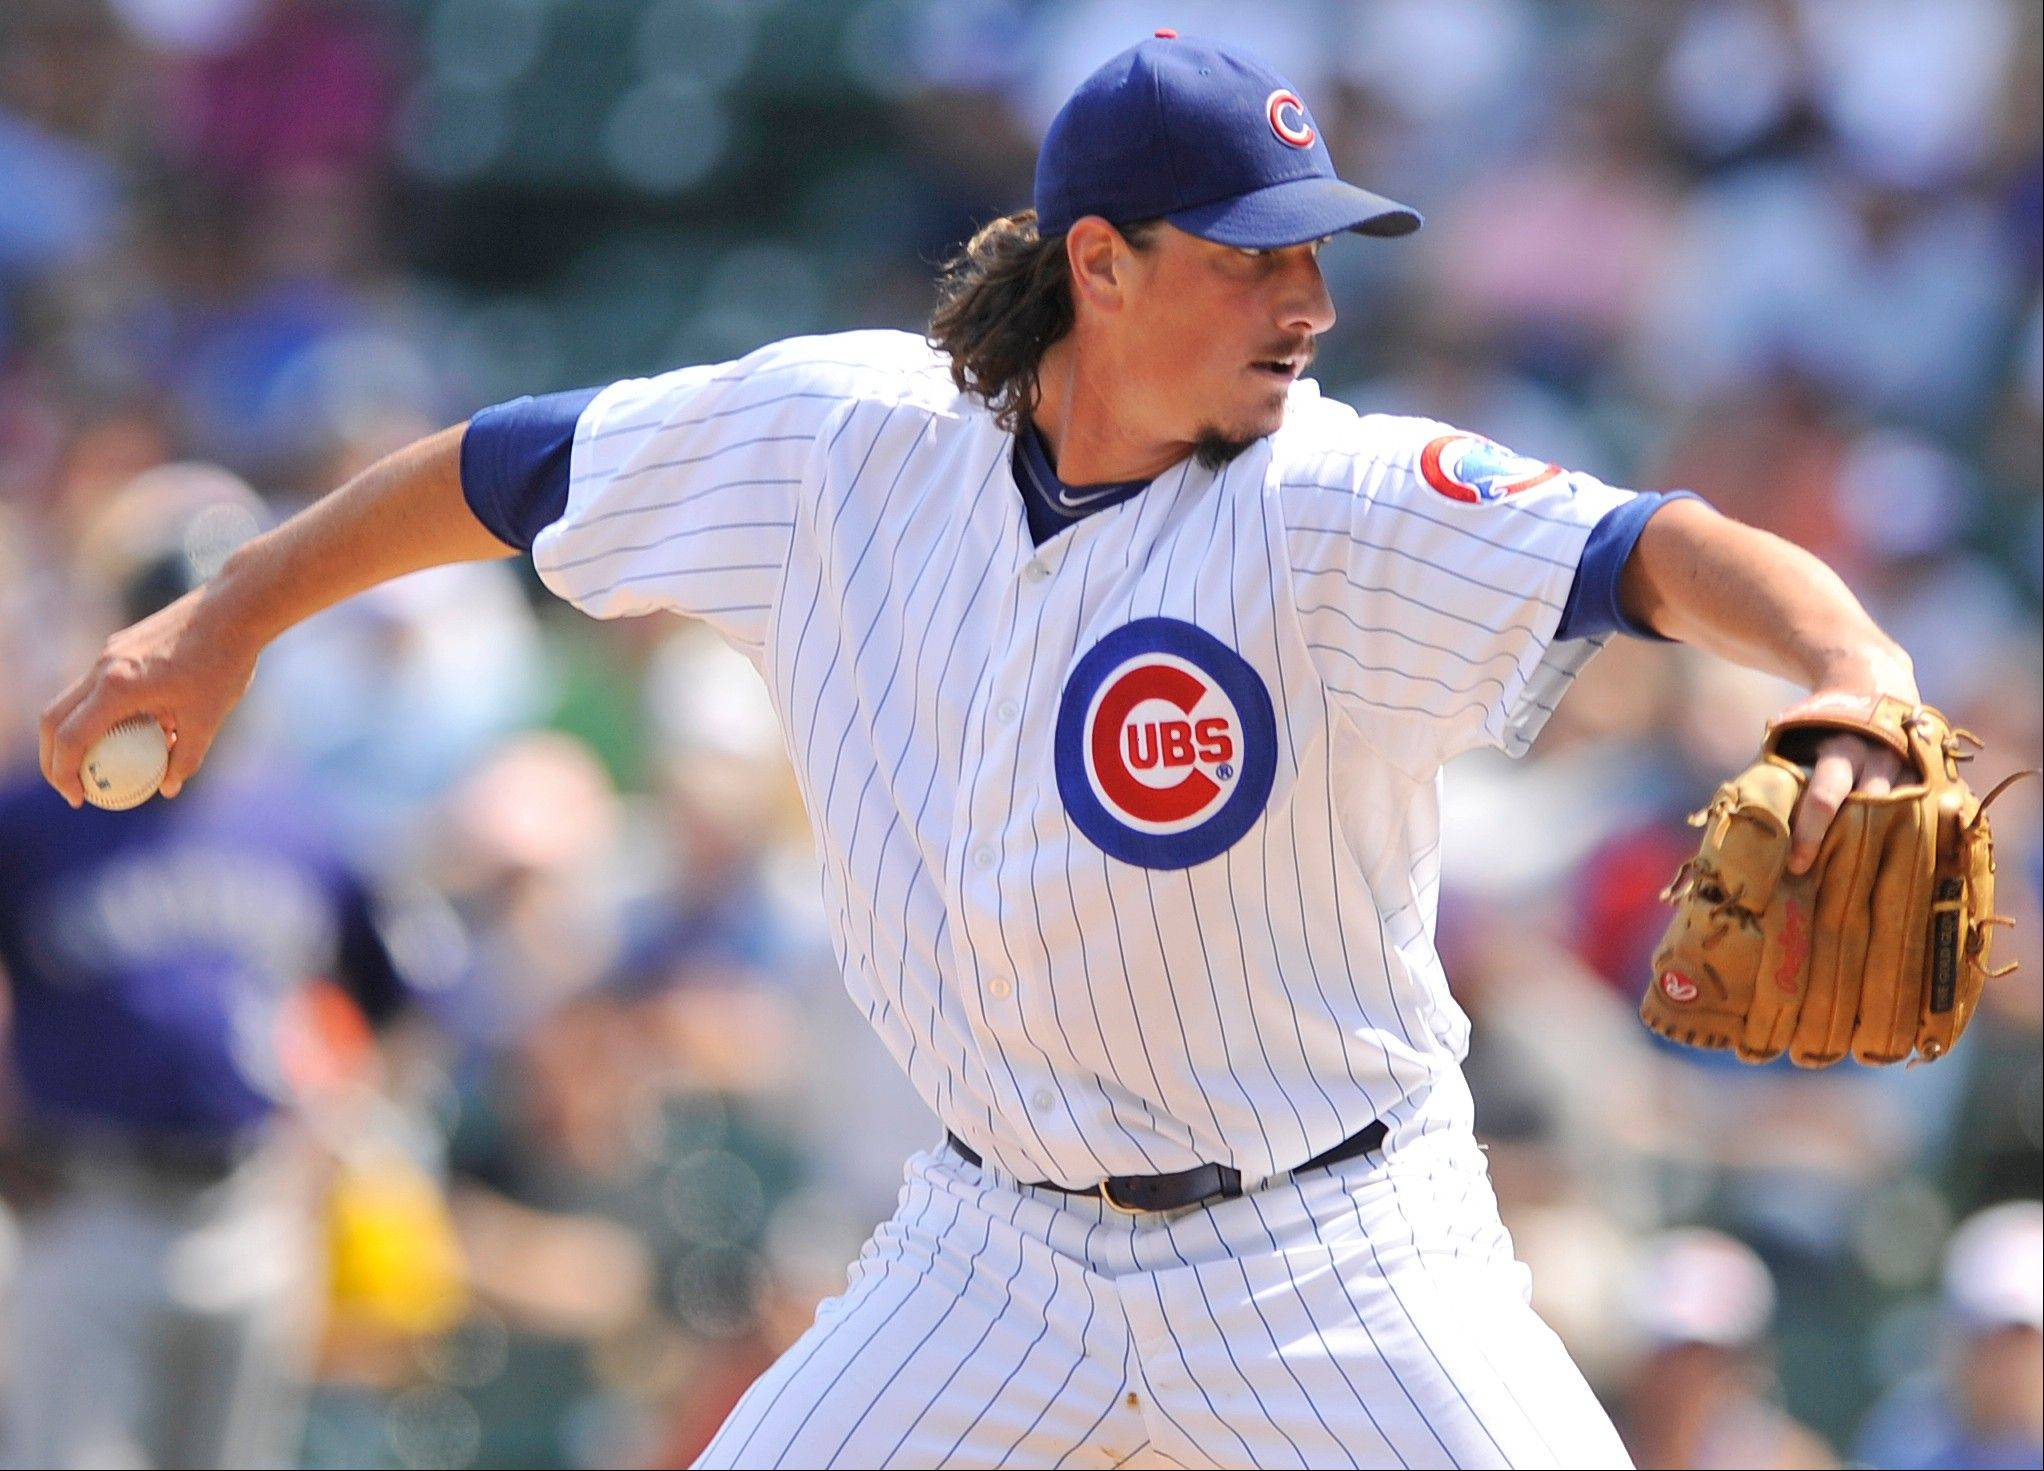 Chicago Cubs starter Jeff Samardzija delivers a pitch against the Colorado Rockies in the first inning during a baseball game in Chicago, Friday, Aug. 24, 2012.